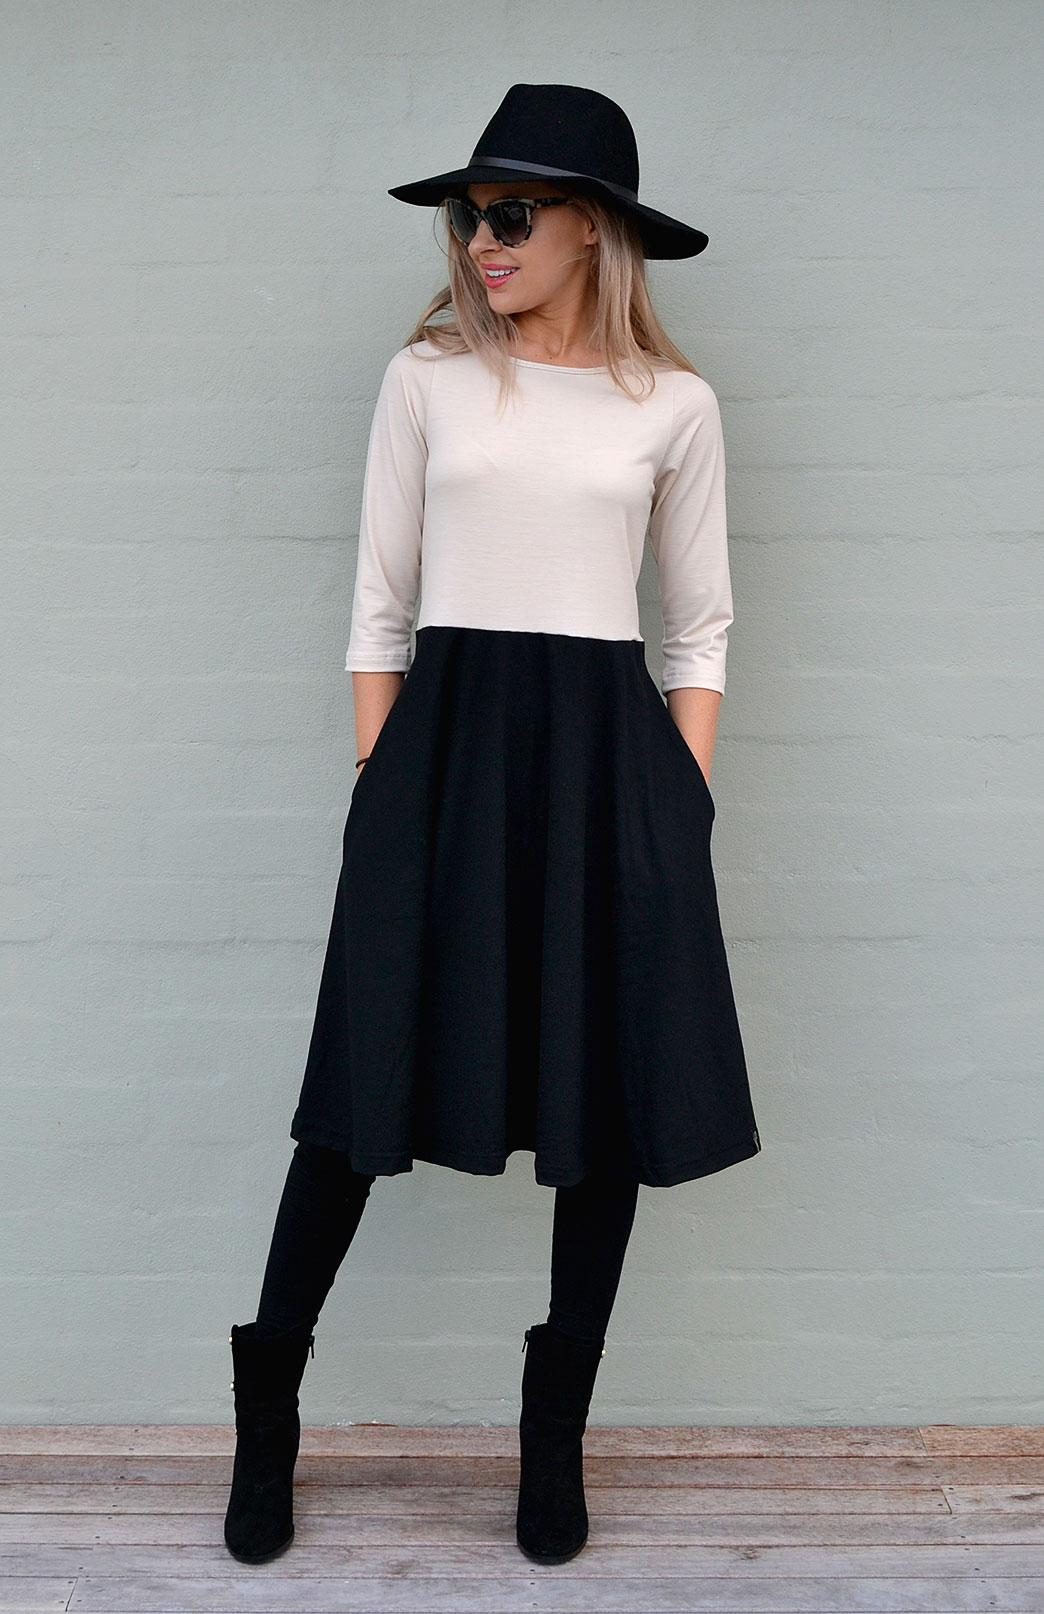 Mary Fit and Flare Dress - Women's Black and Cream Knee Length 3/4 Sleeved Fit and Flare Merino Wool Dress with Pockets - Smitten Merino Tasmania Australia